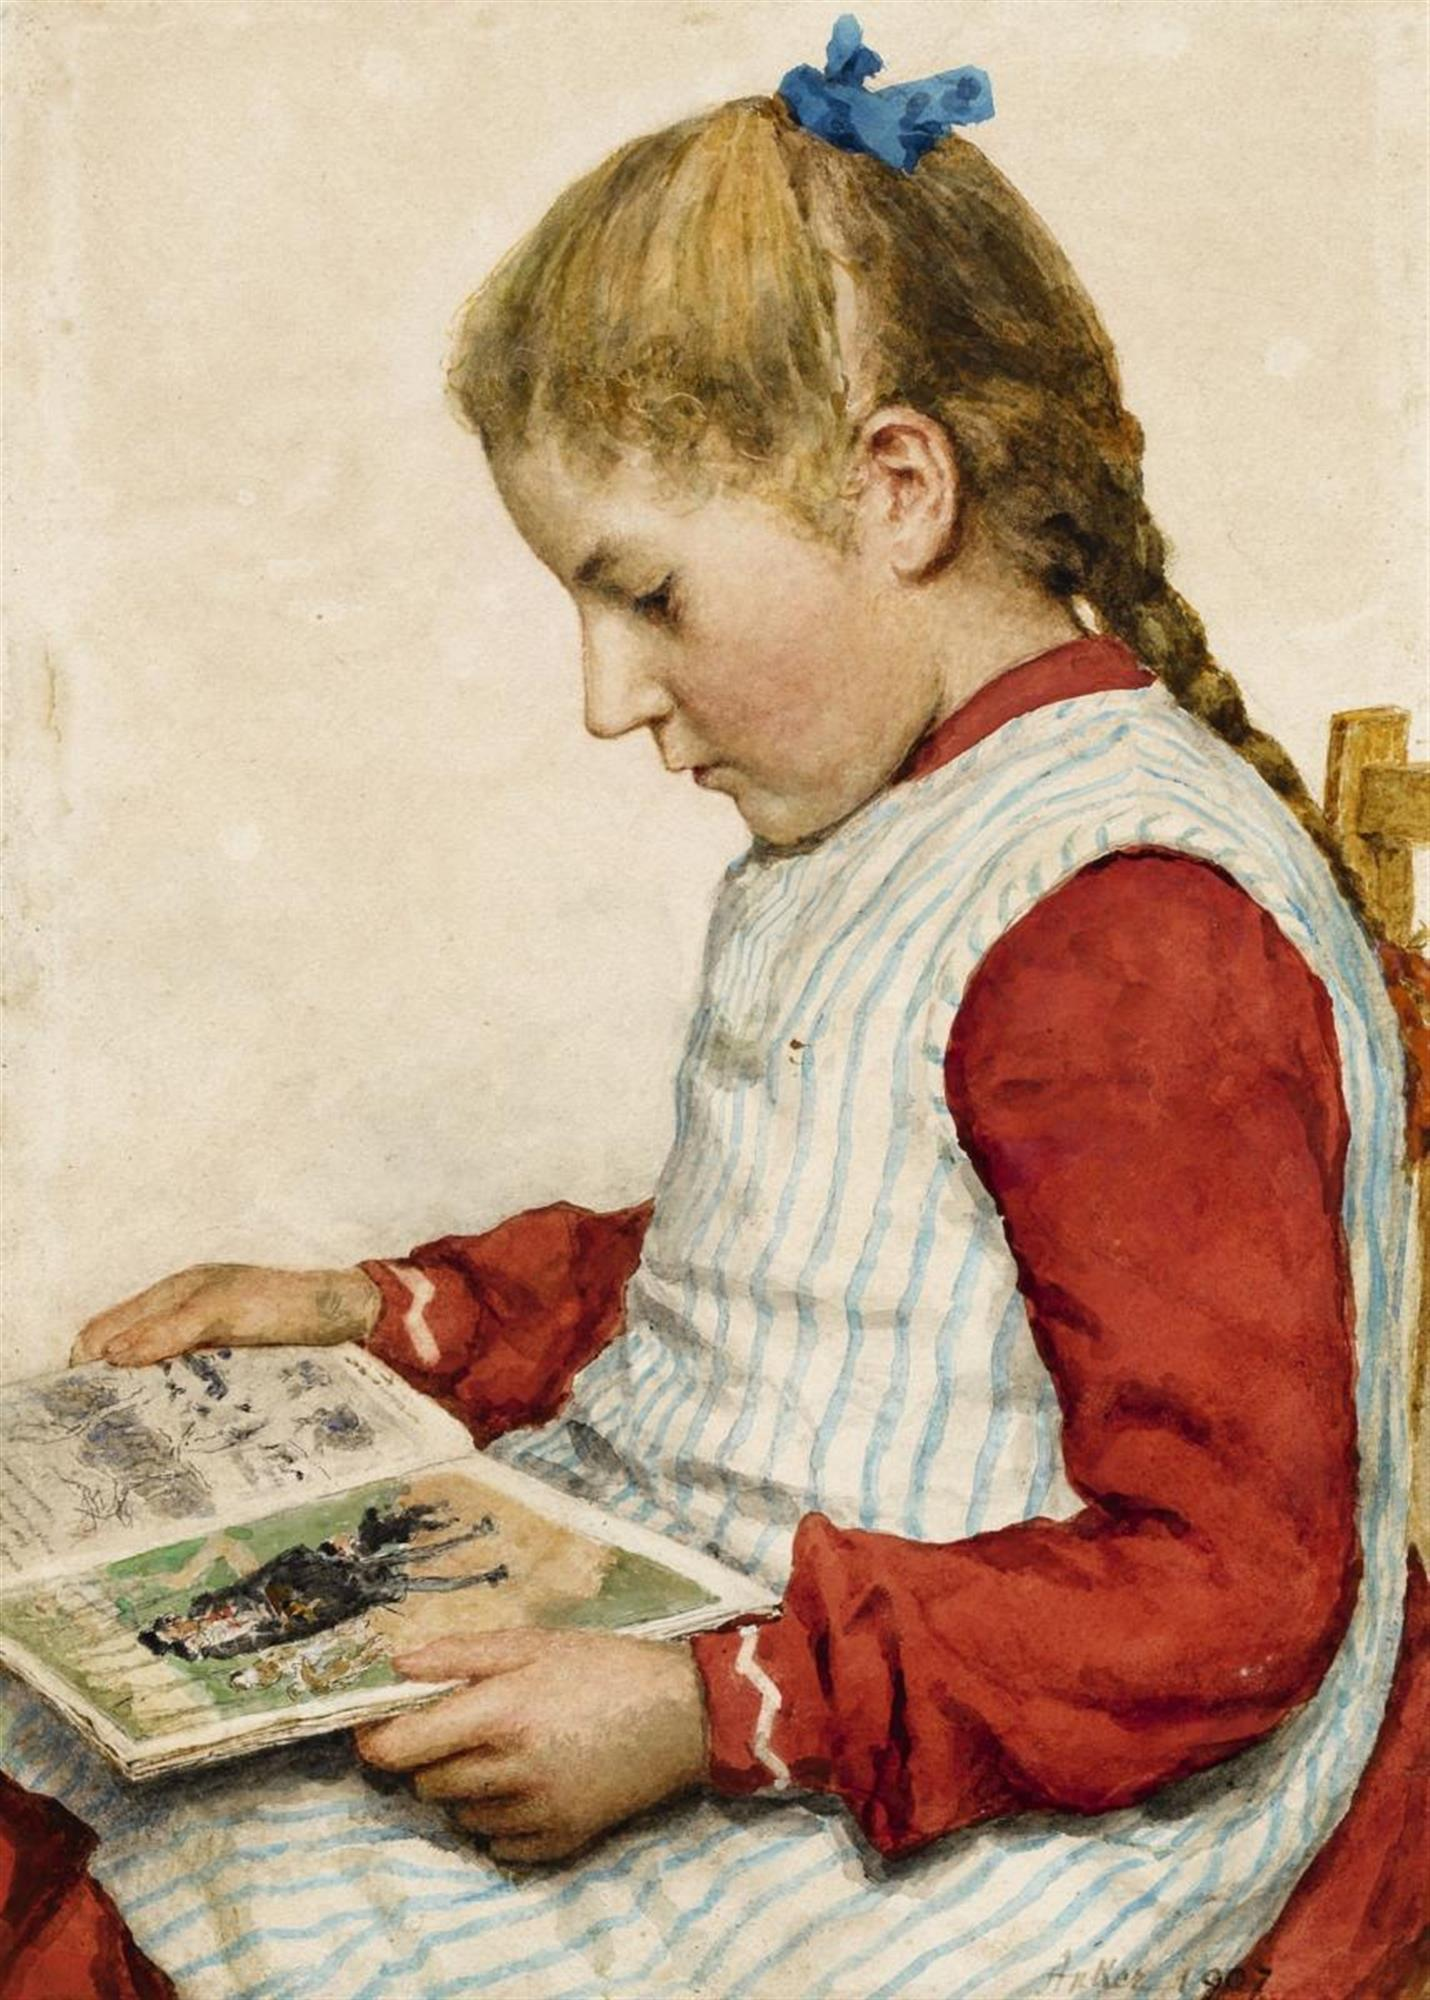 Albert Anker, A Girl Looking at a Book, 1907